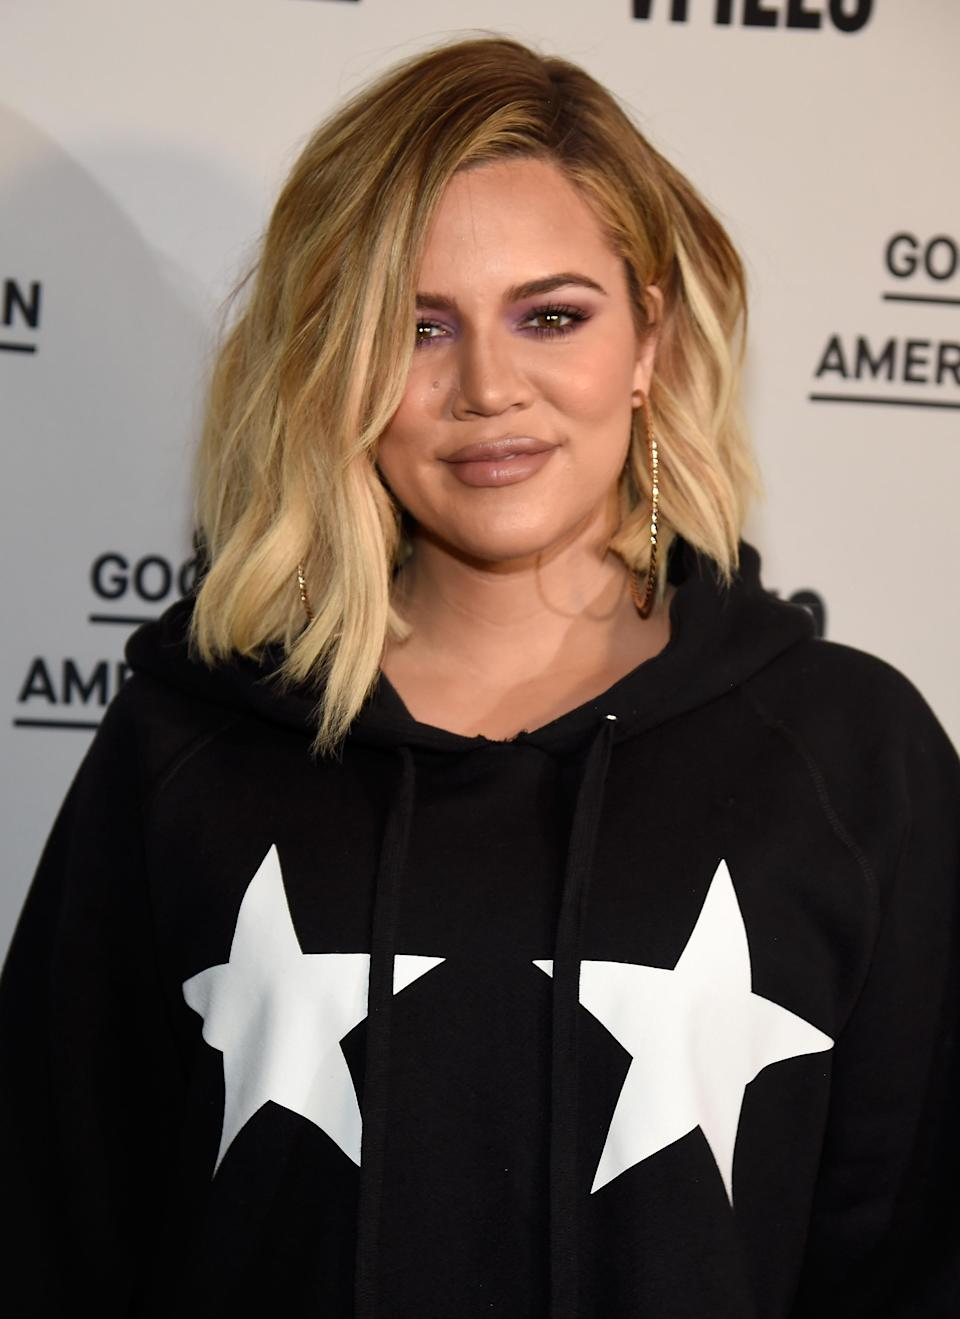 """After giving birth to daughter True, Khloé Kardashian says she is feeling """"discouraged"""" about her weight loss. (Photo: Kevin Mazur/Getty Images for Good American)."""